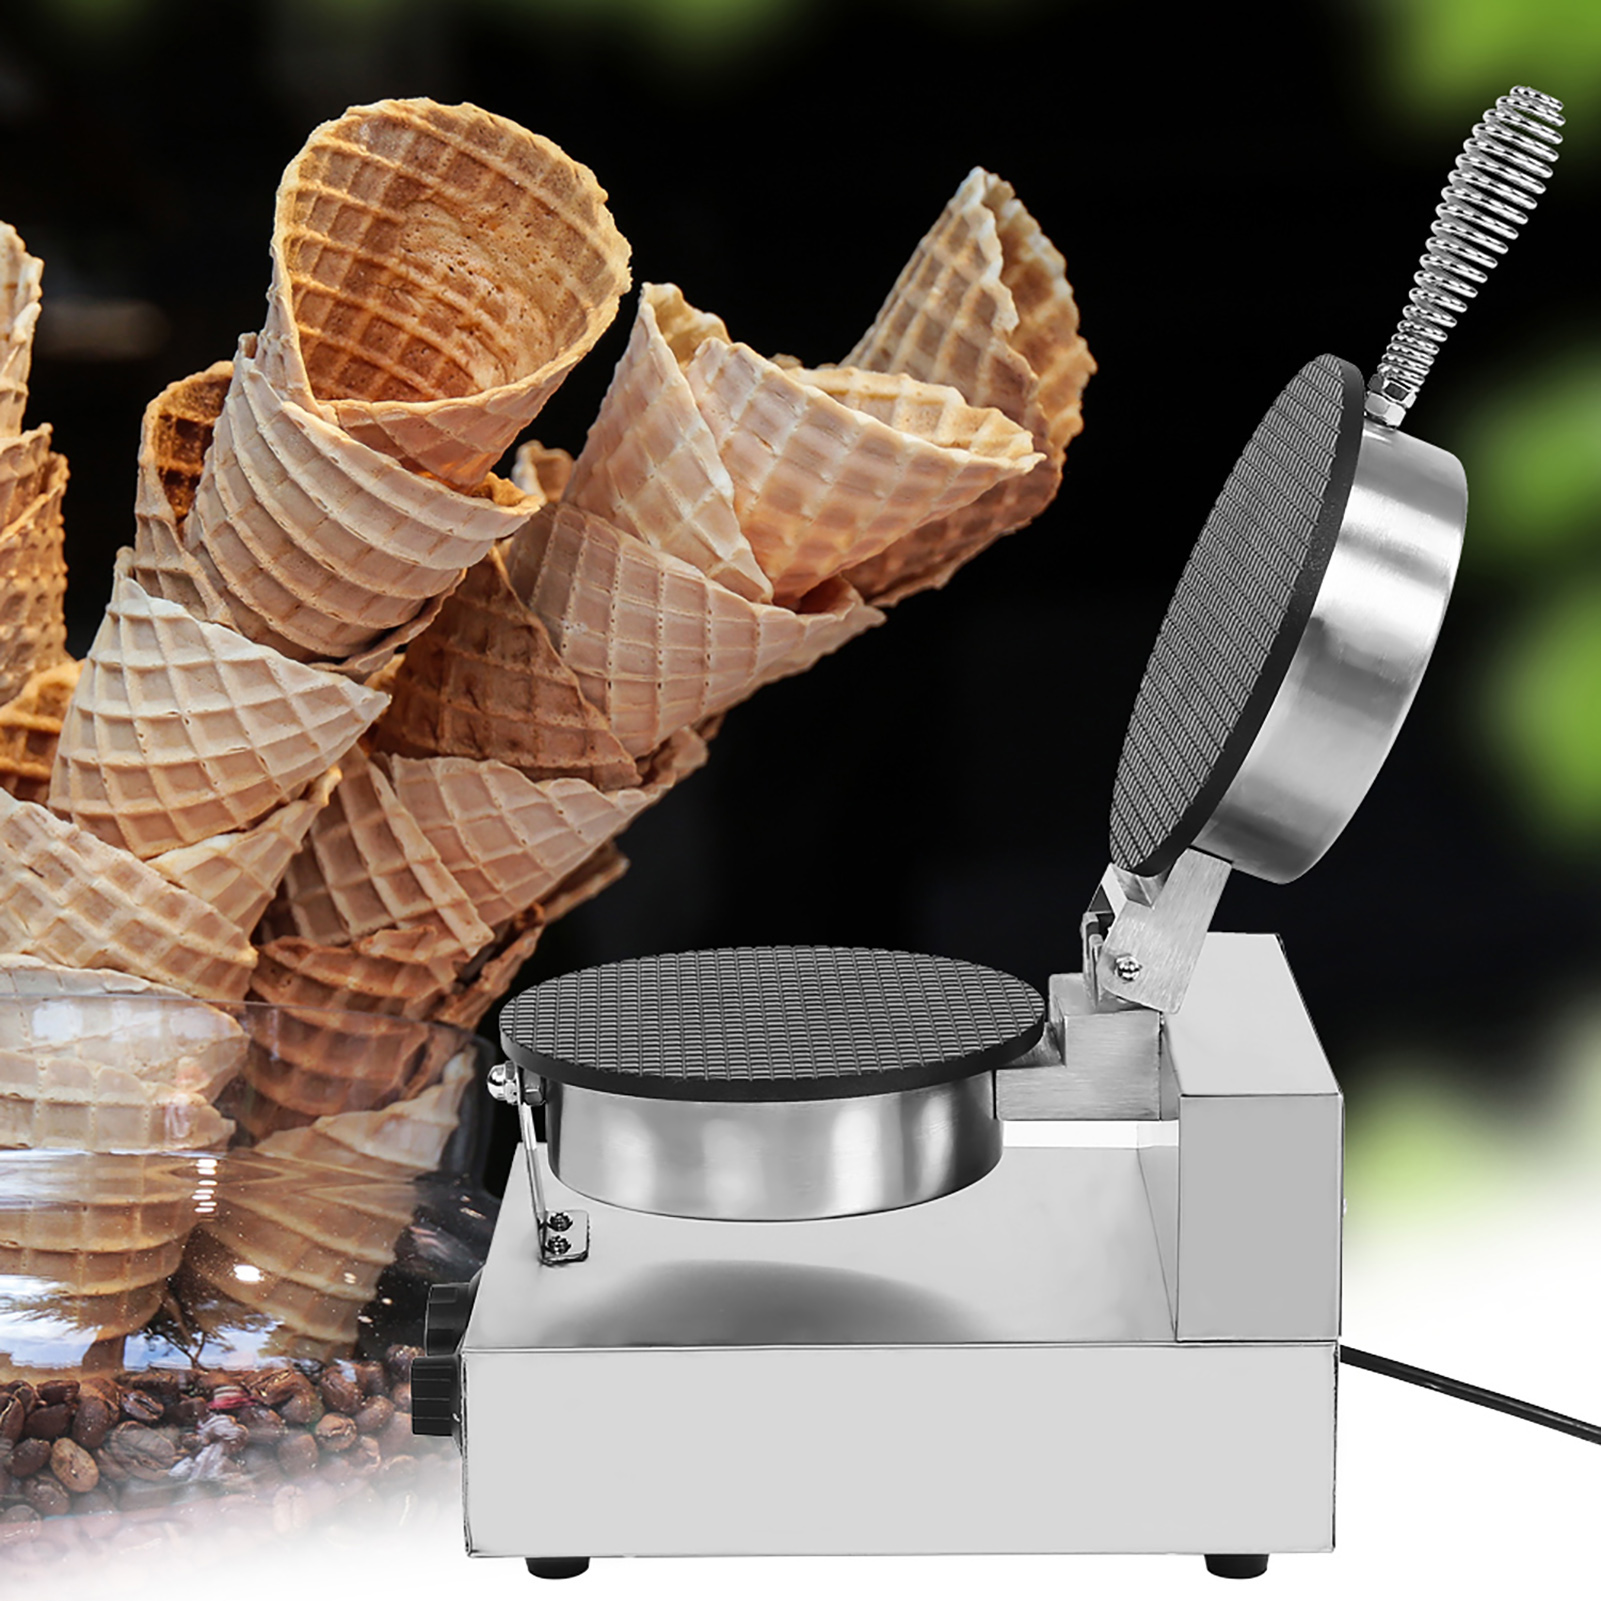 Kitchen-Electric-Stainless-Steel-Ice-Cream-Egg-Waffle-Cone-Maker-Cooking-Machine thumbnail 17